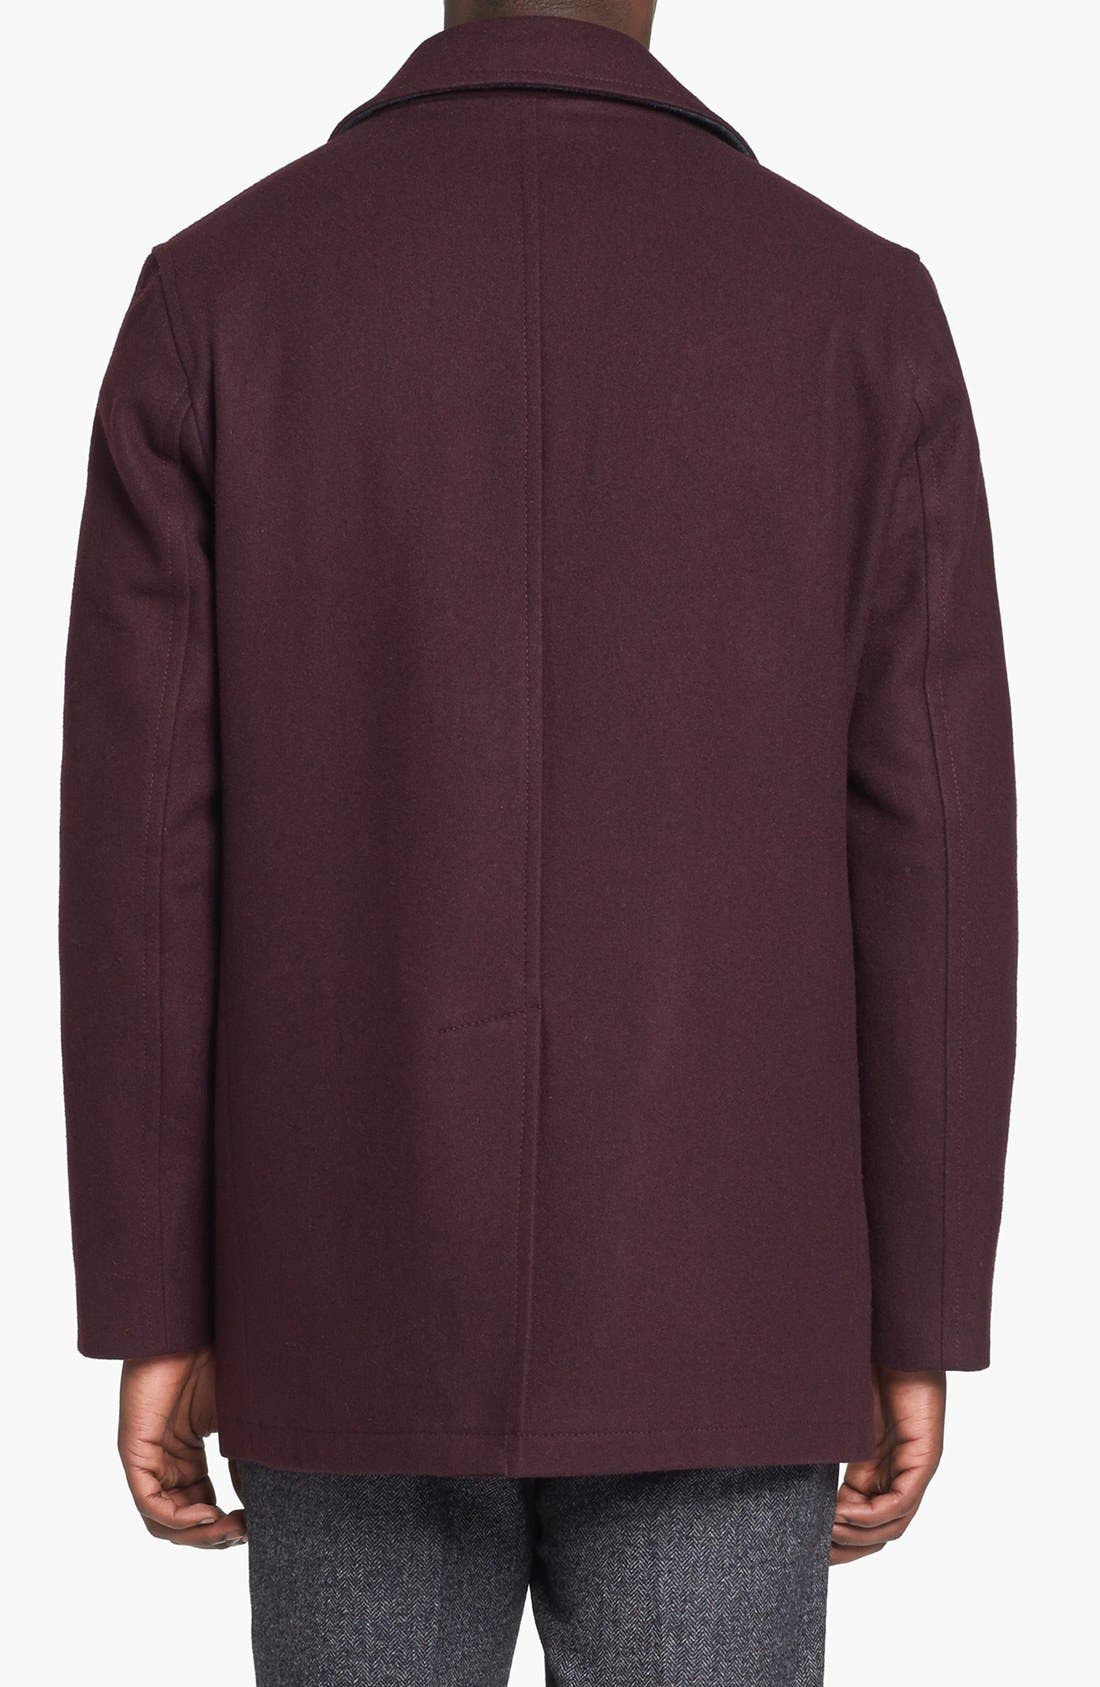 Alternate Image 2  - Michael Kors 'San Diego' Wool Blend Peacoat (Online Exclusive)